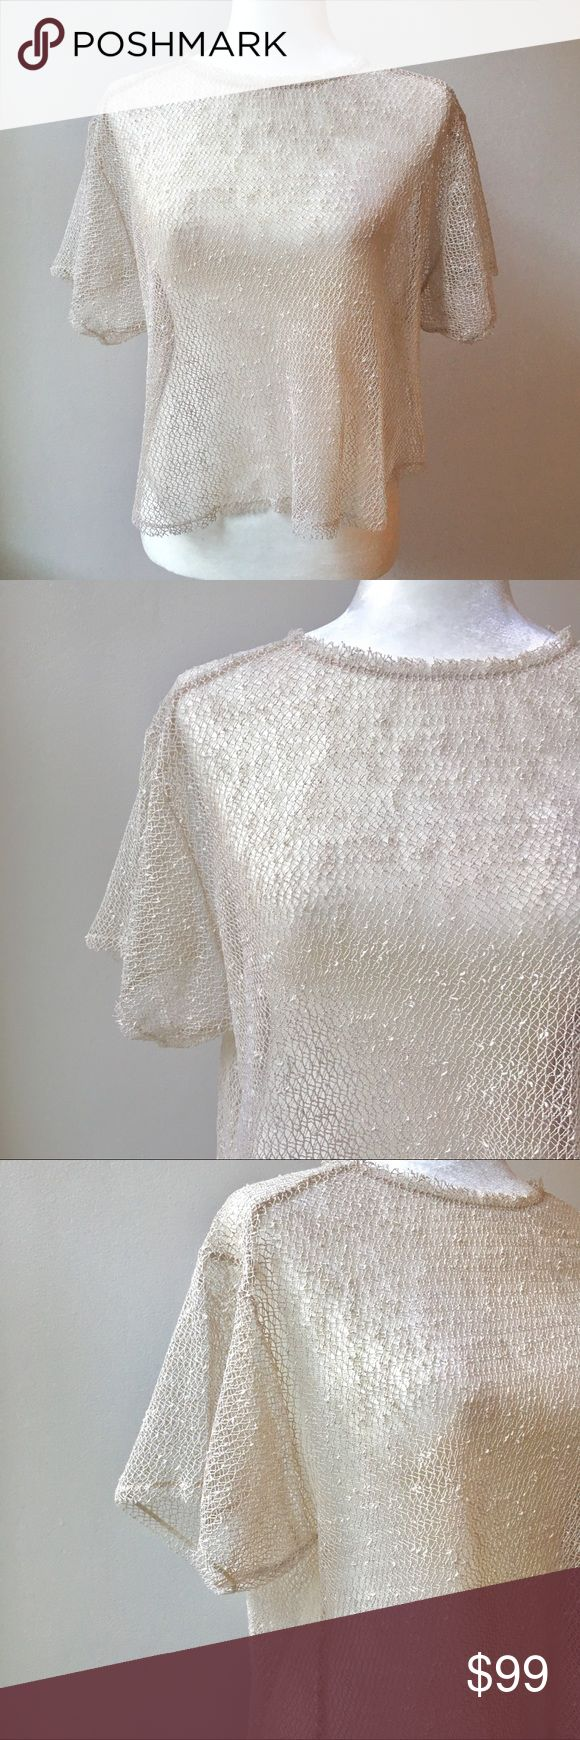 ZARA Open Lace Crochet Short Sleeve Blouse ZARA Open Lace Crochet Short Sleeve Blouse Sz Medium. Cream color, crochet texture. Absolutely stunning! ✨Buy Instantly or make an offer!✨ Tops Blouses